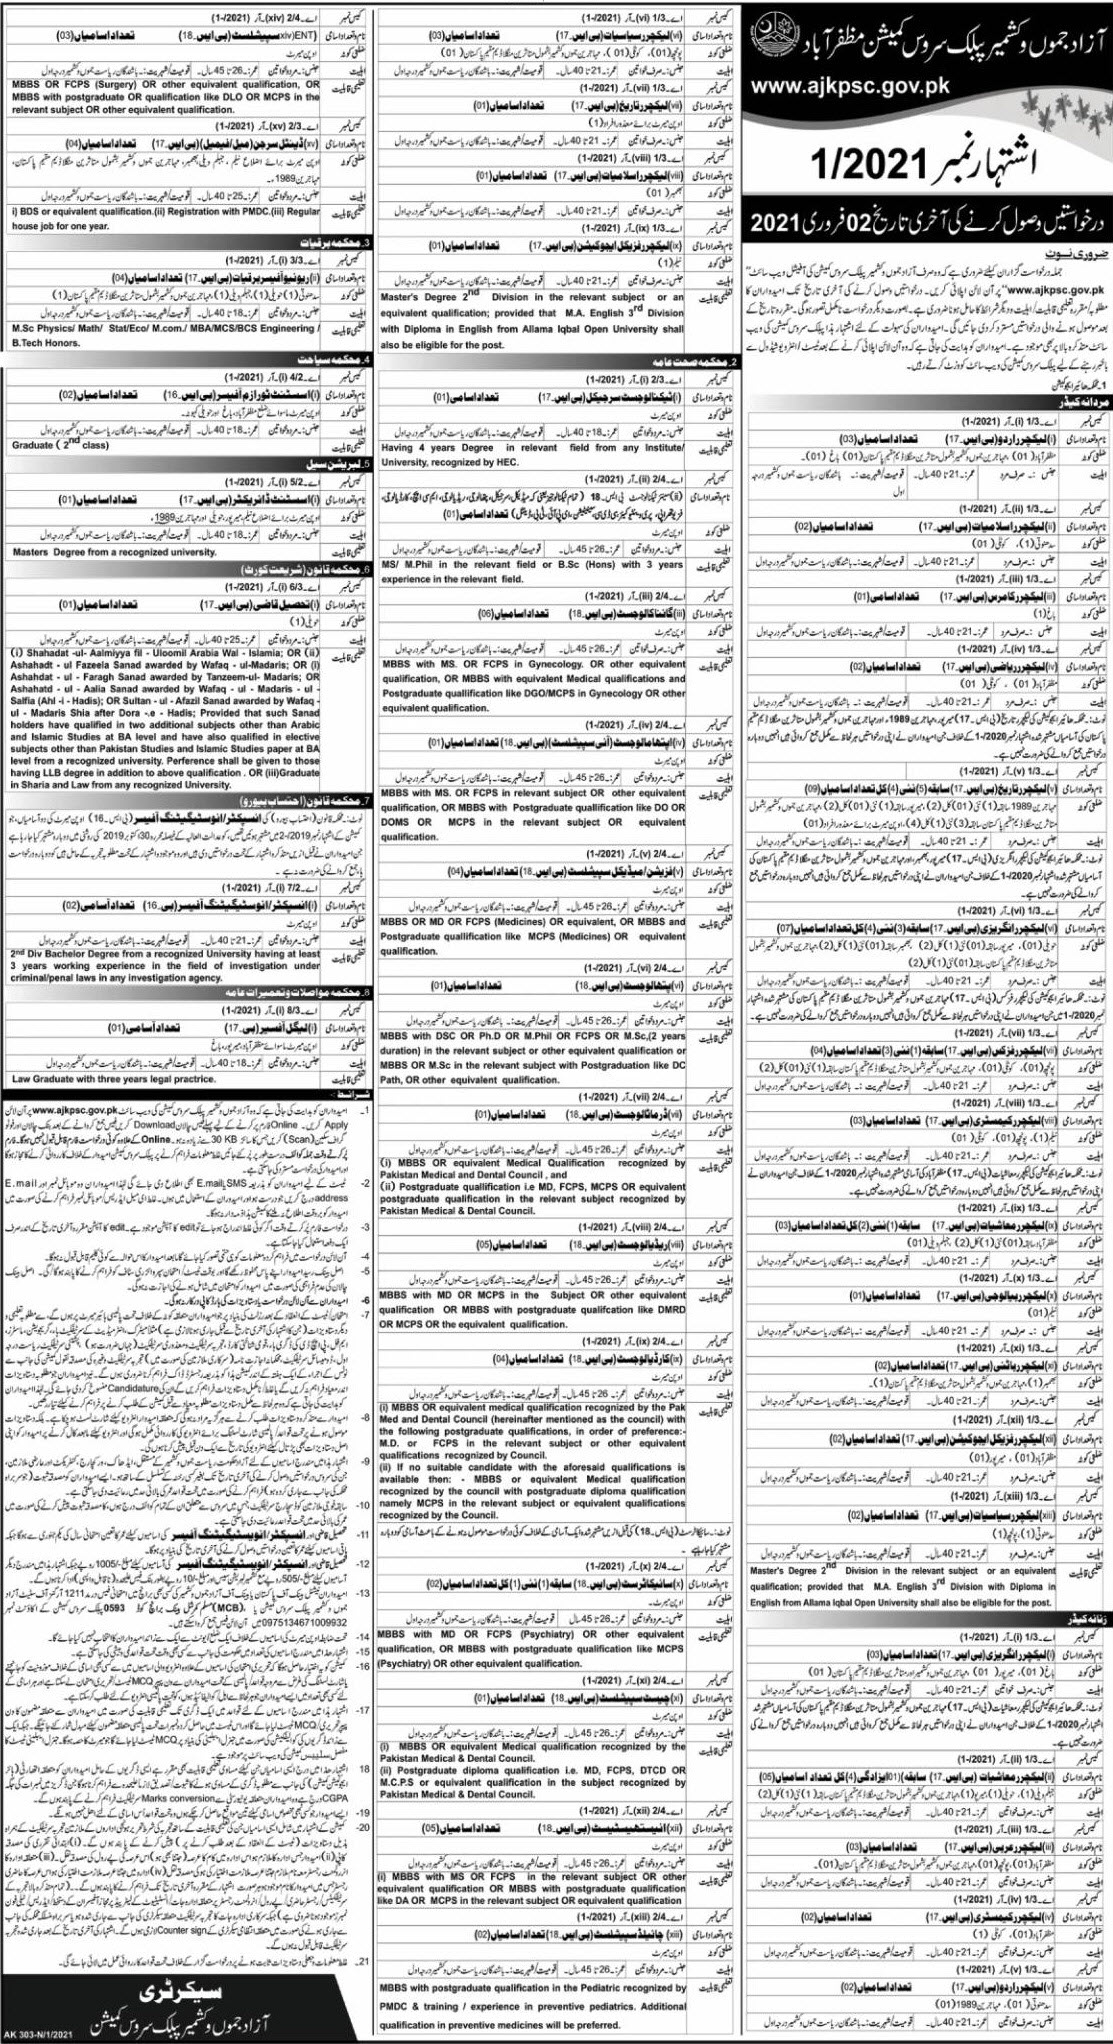 Health Department jobs newspaper ad for Cardiologist in Muzaffarabad on 2021-01-12